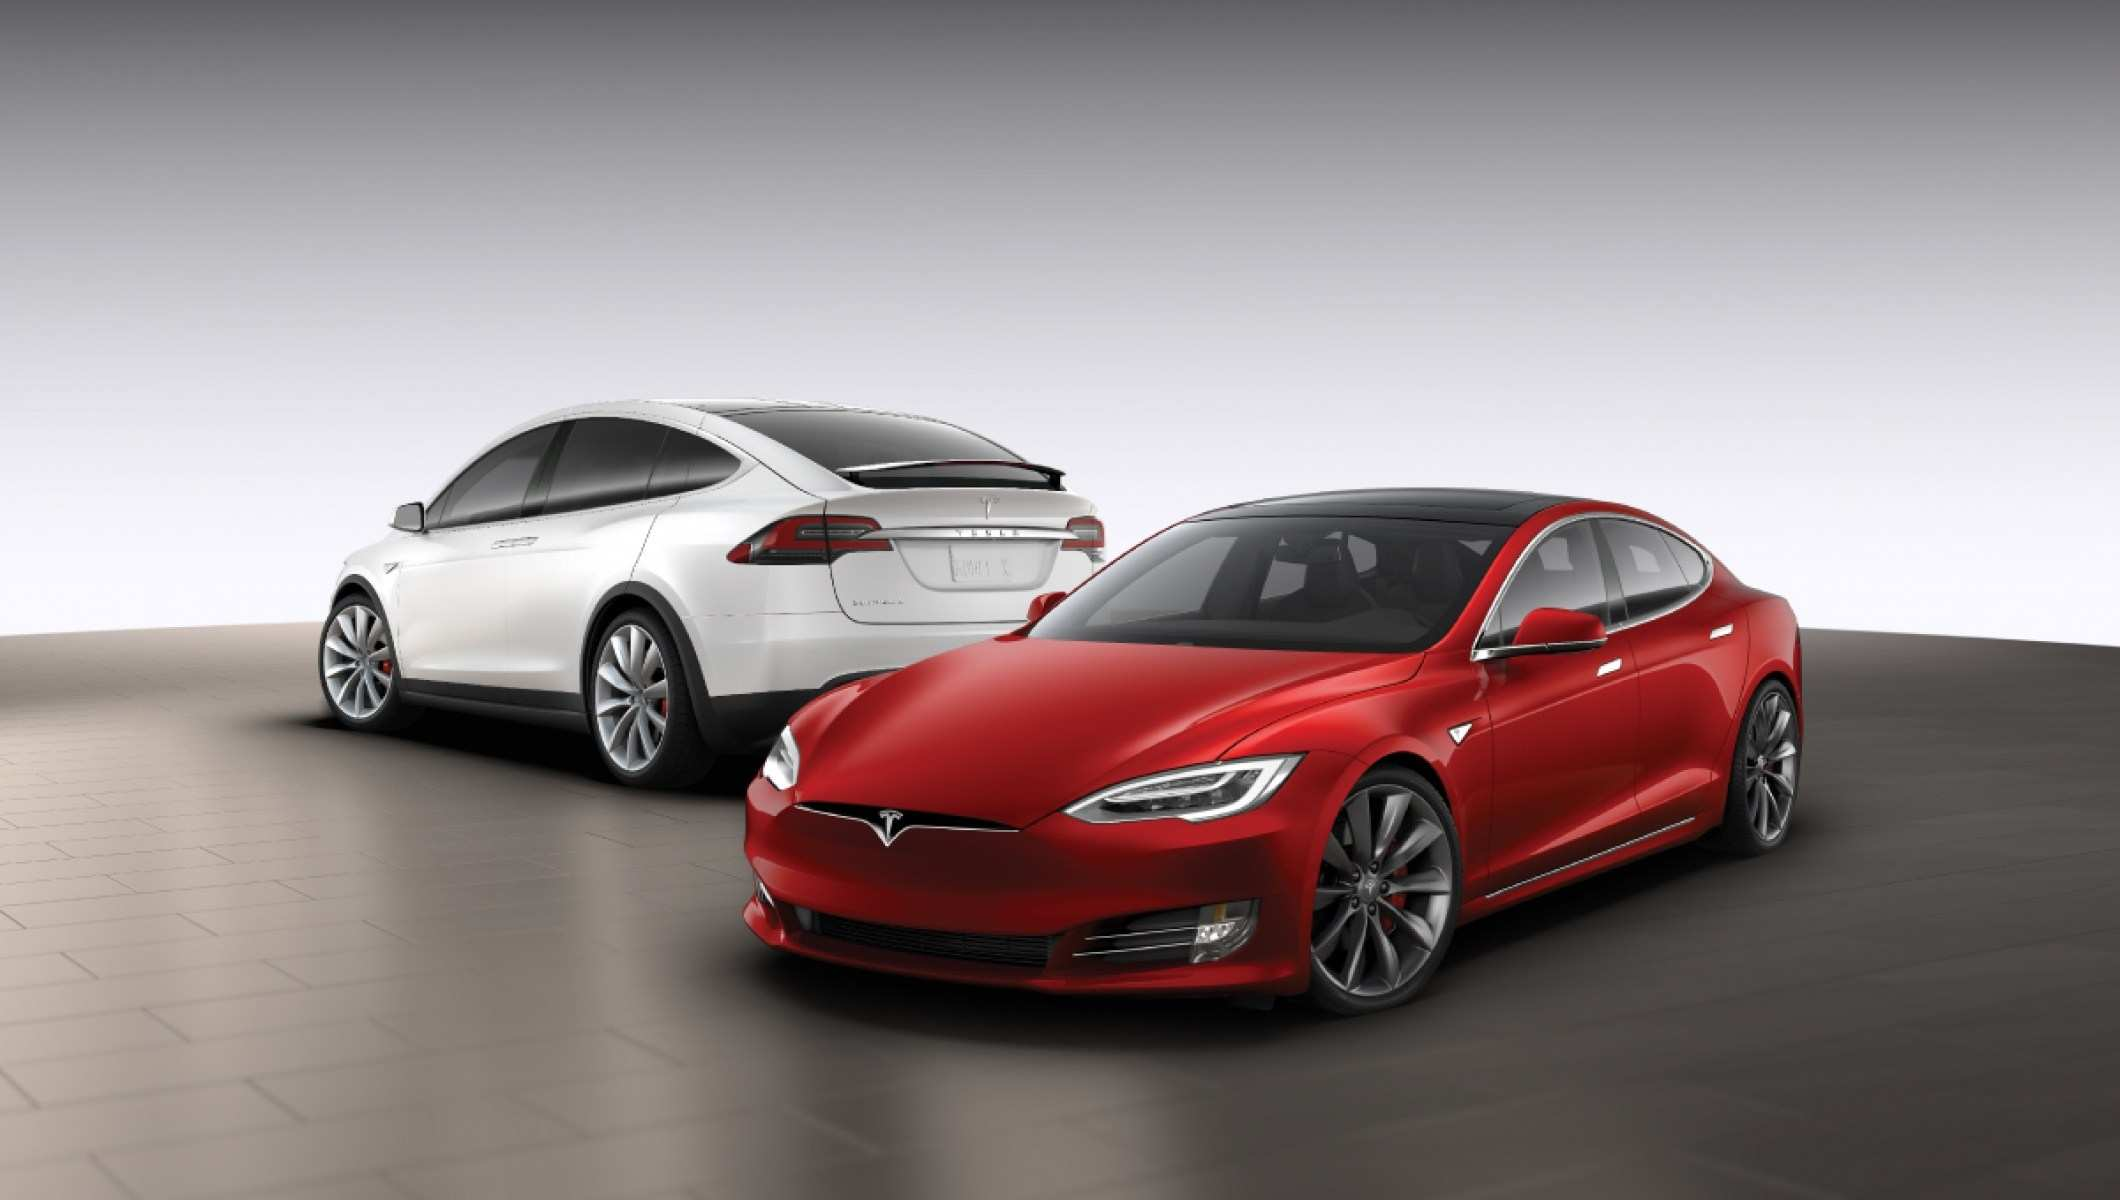 98 Best Review Tesla Goal 2020 Specs for Tesla Goal 2020